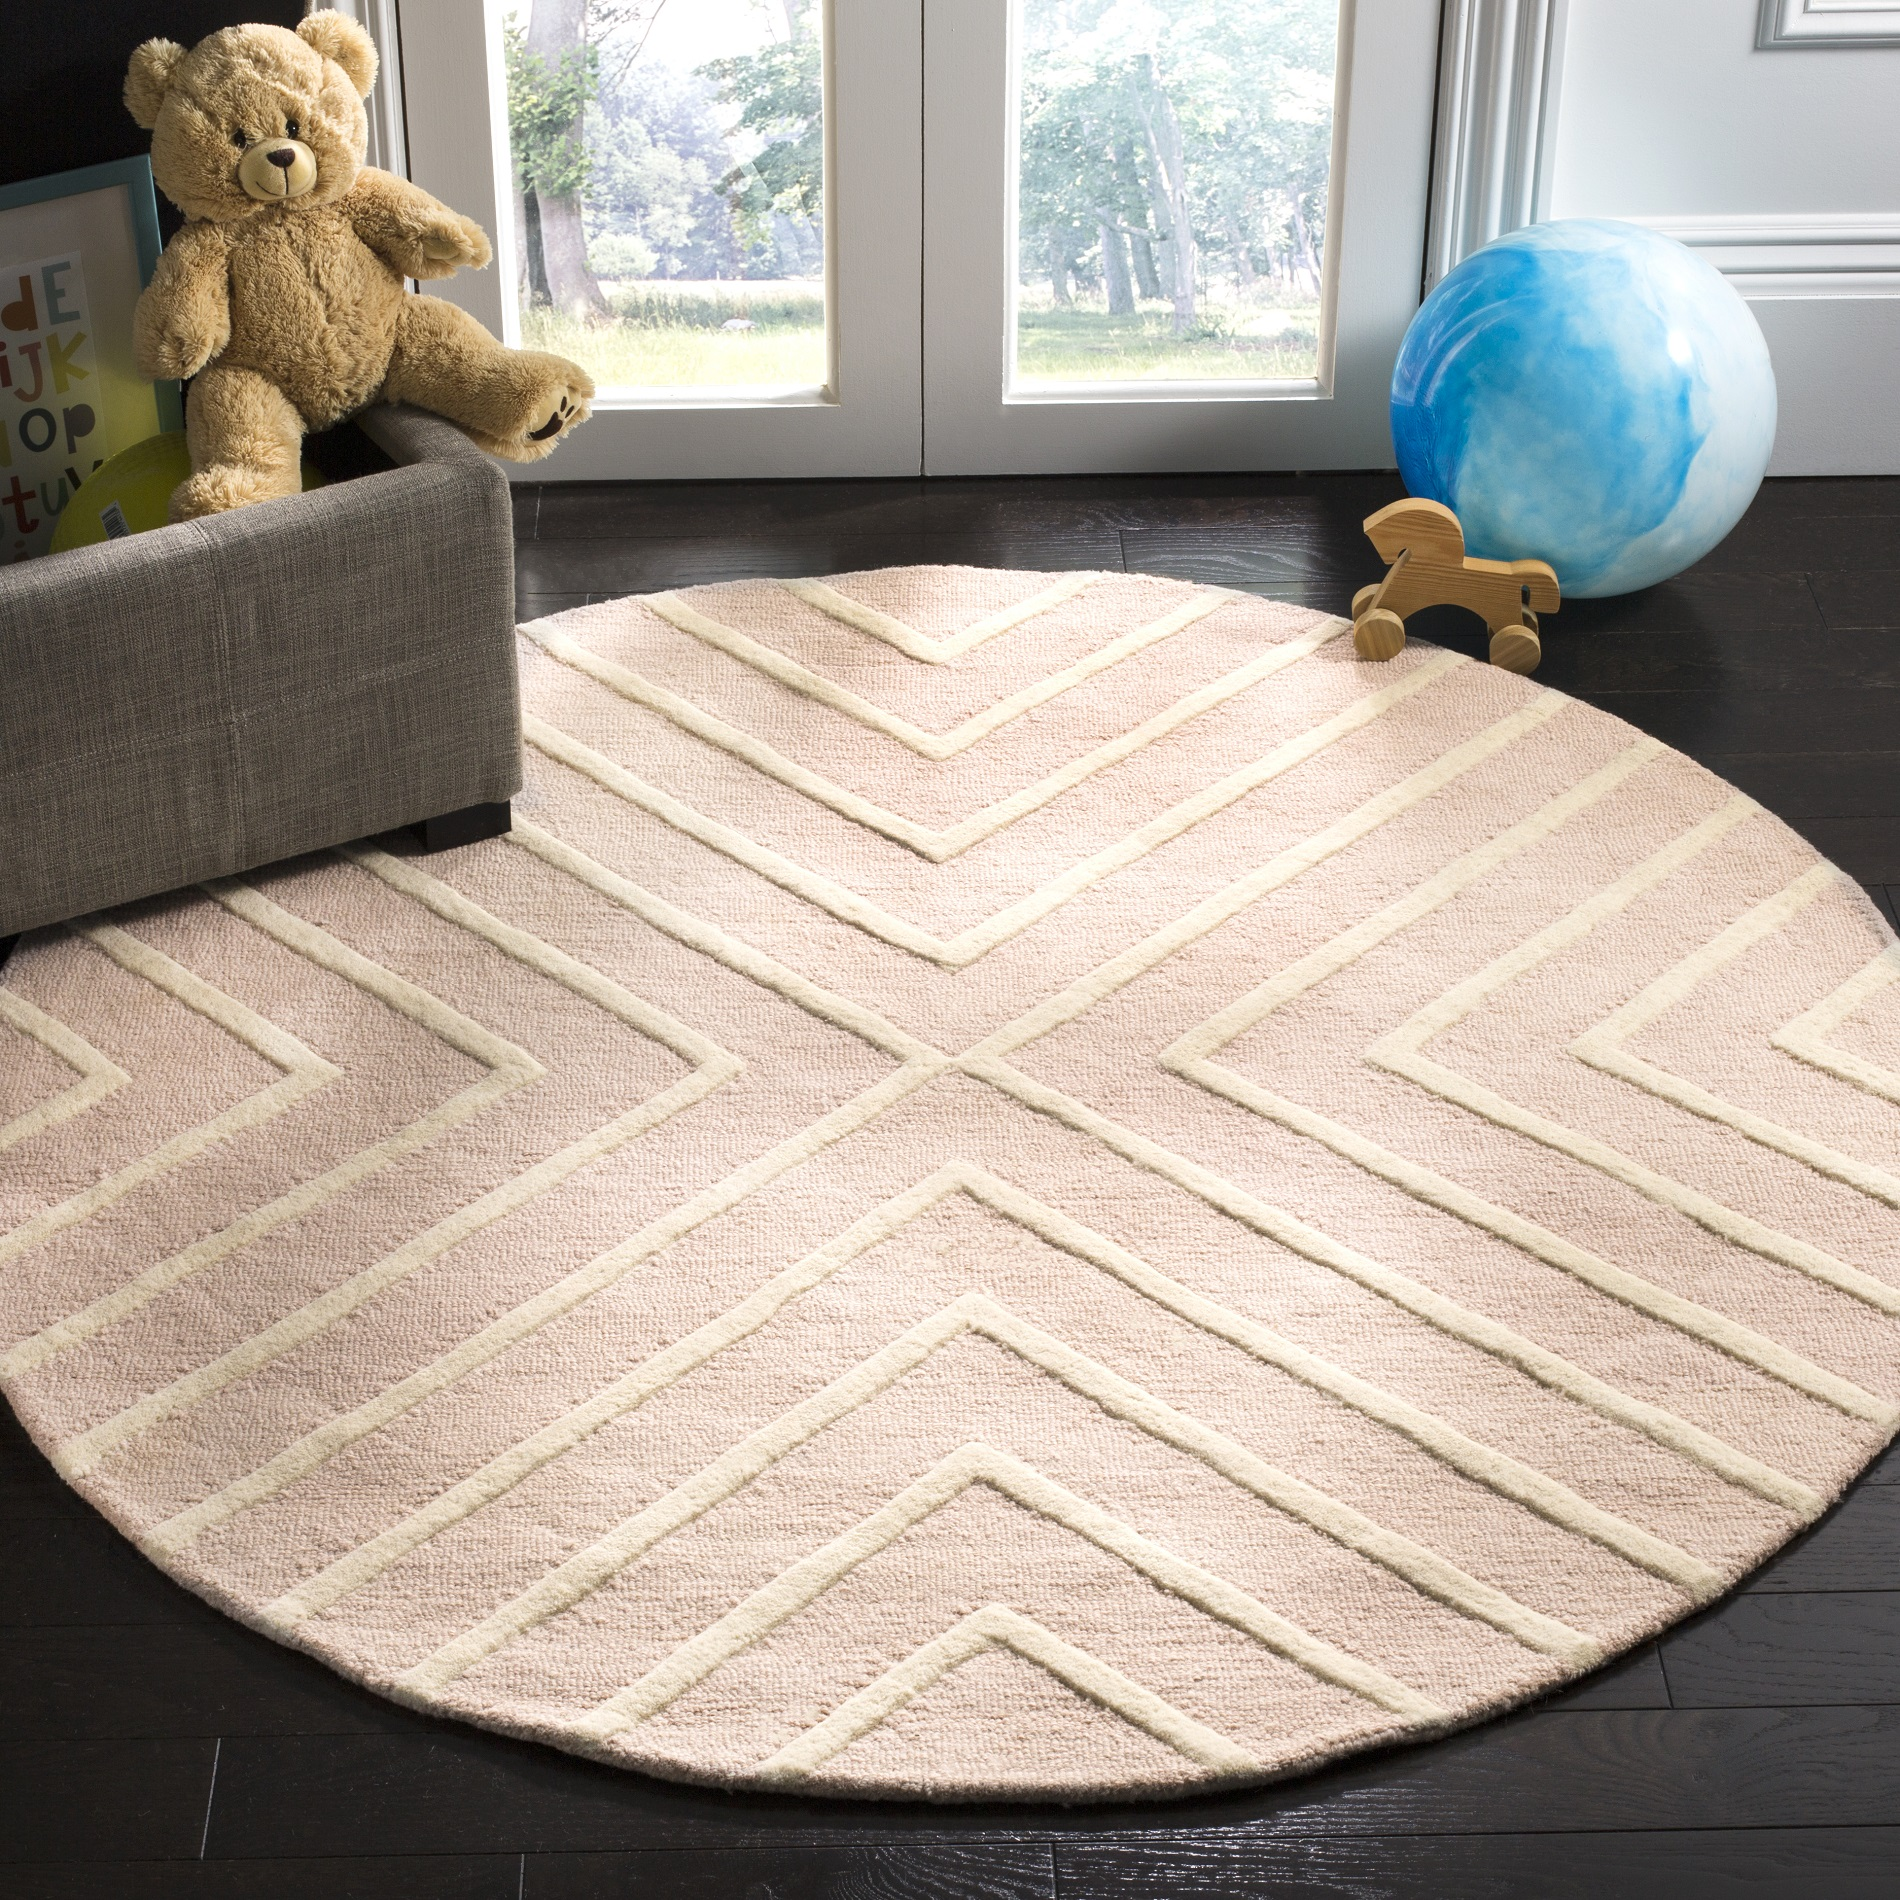 Safavieh Kids X Pattern Area Rug or Runner